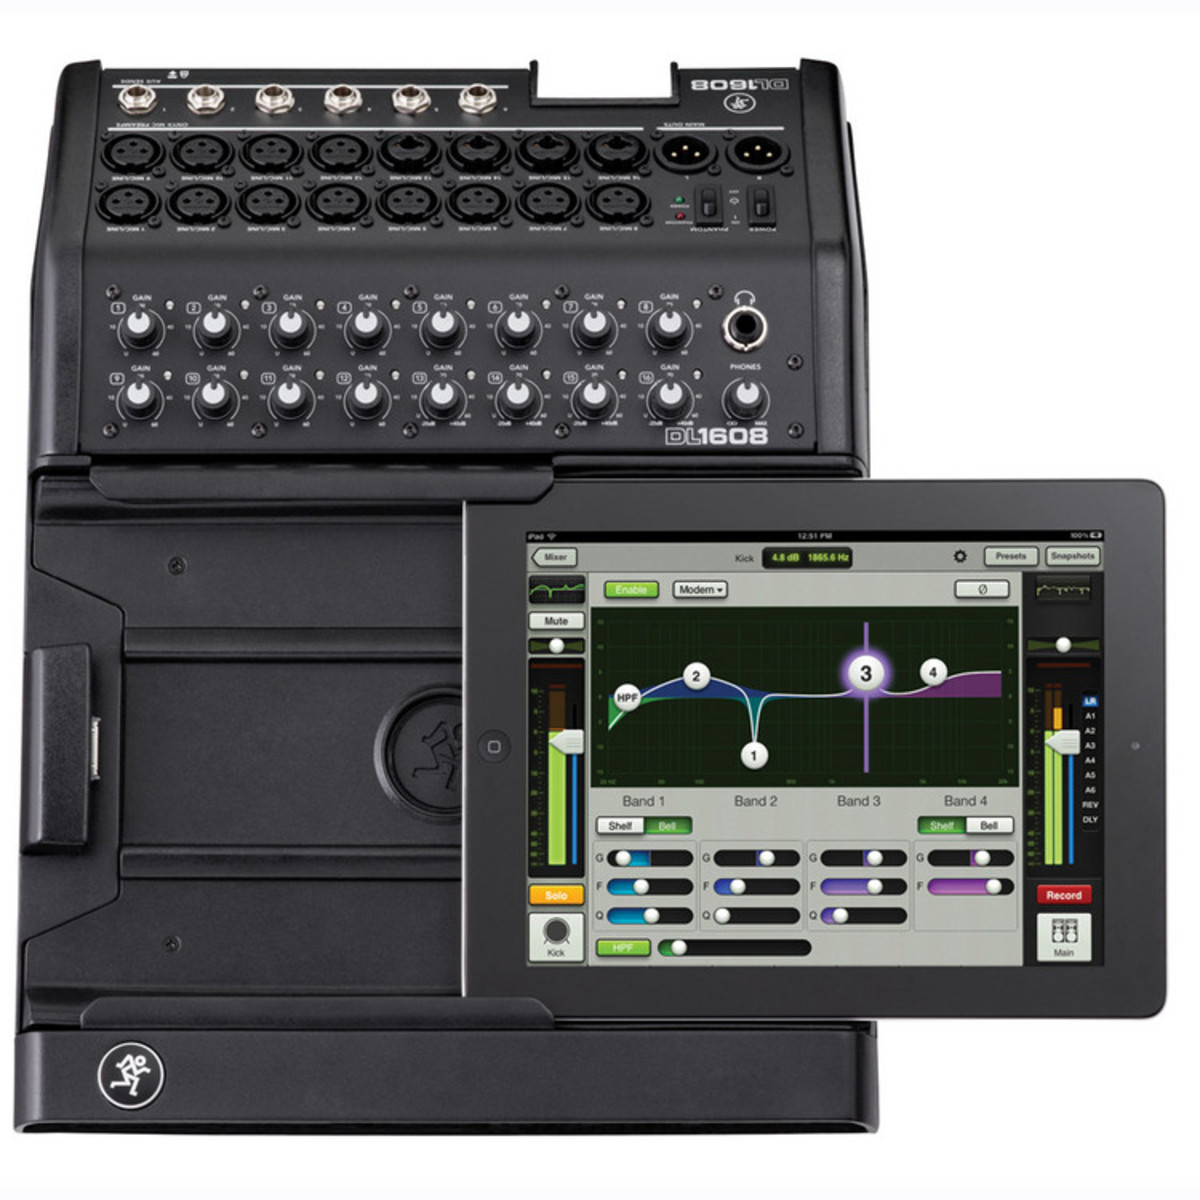 mackie dl1608 16 channel digital live sound mixer with ipad control at gear4music. Black Bedroom Furniture Sets. Home Design Ideas